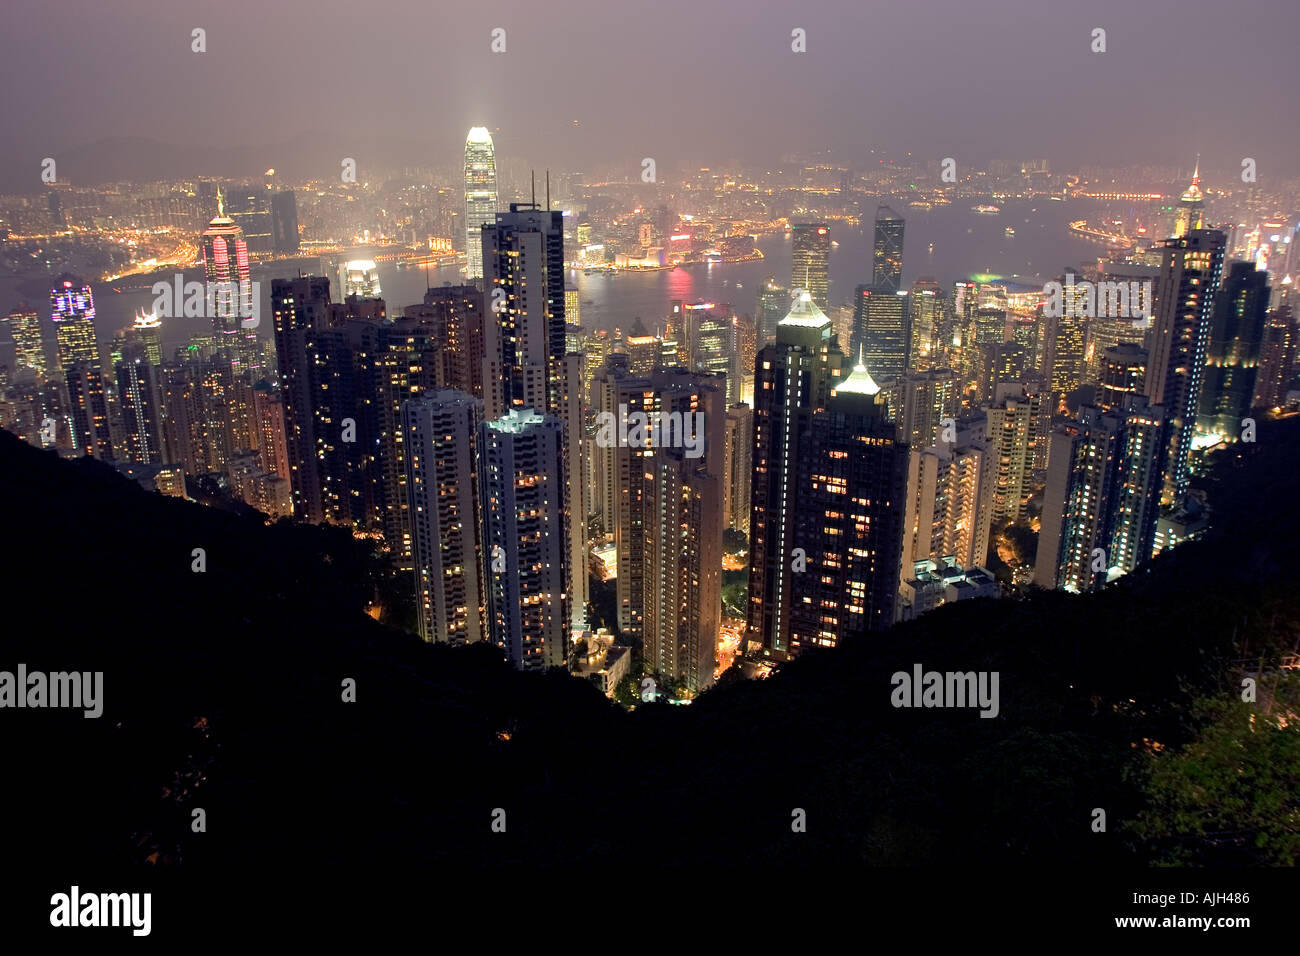 The view from the top of the peak in Hong Kong - Stock Image